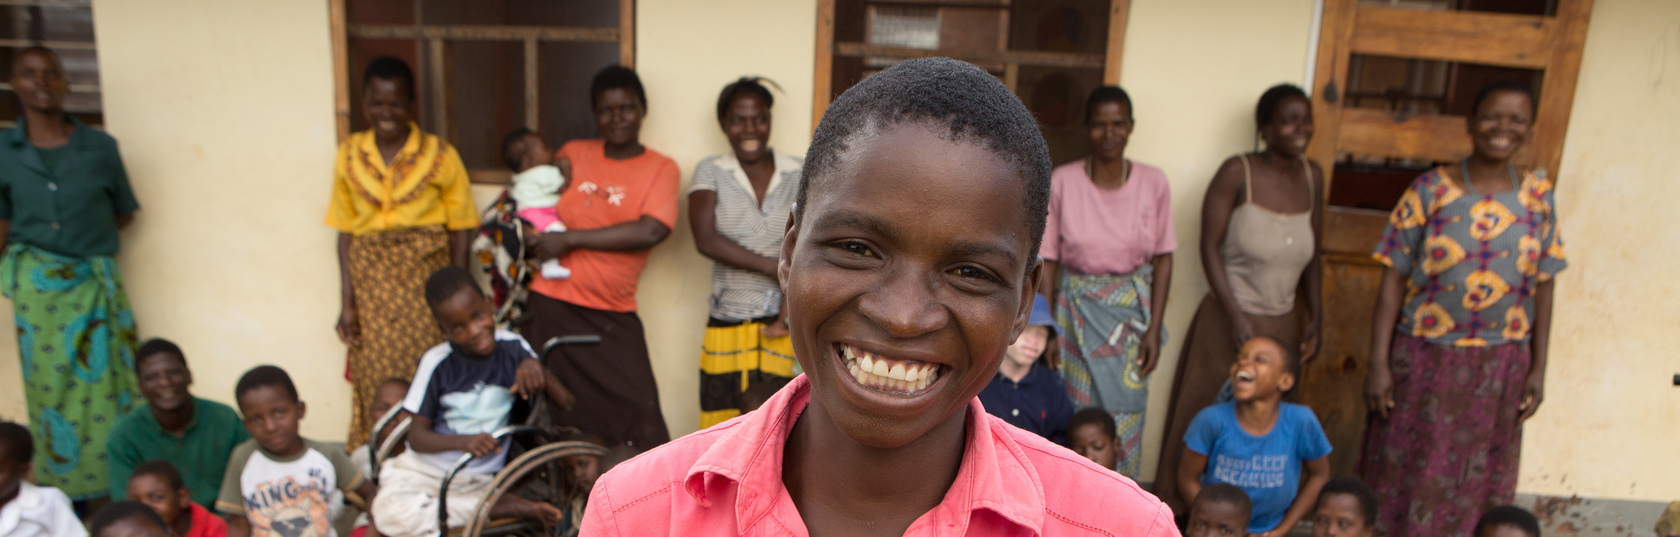 Mirriam smiling in front of a group of children.